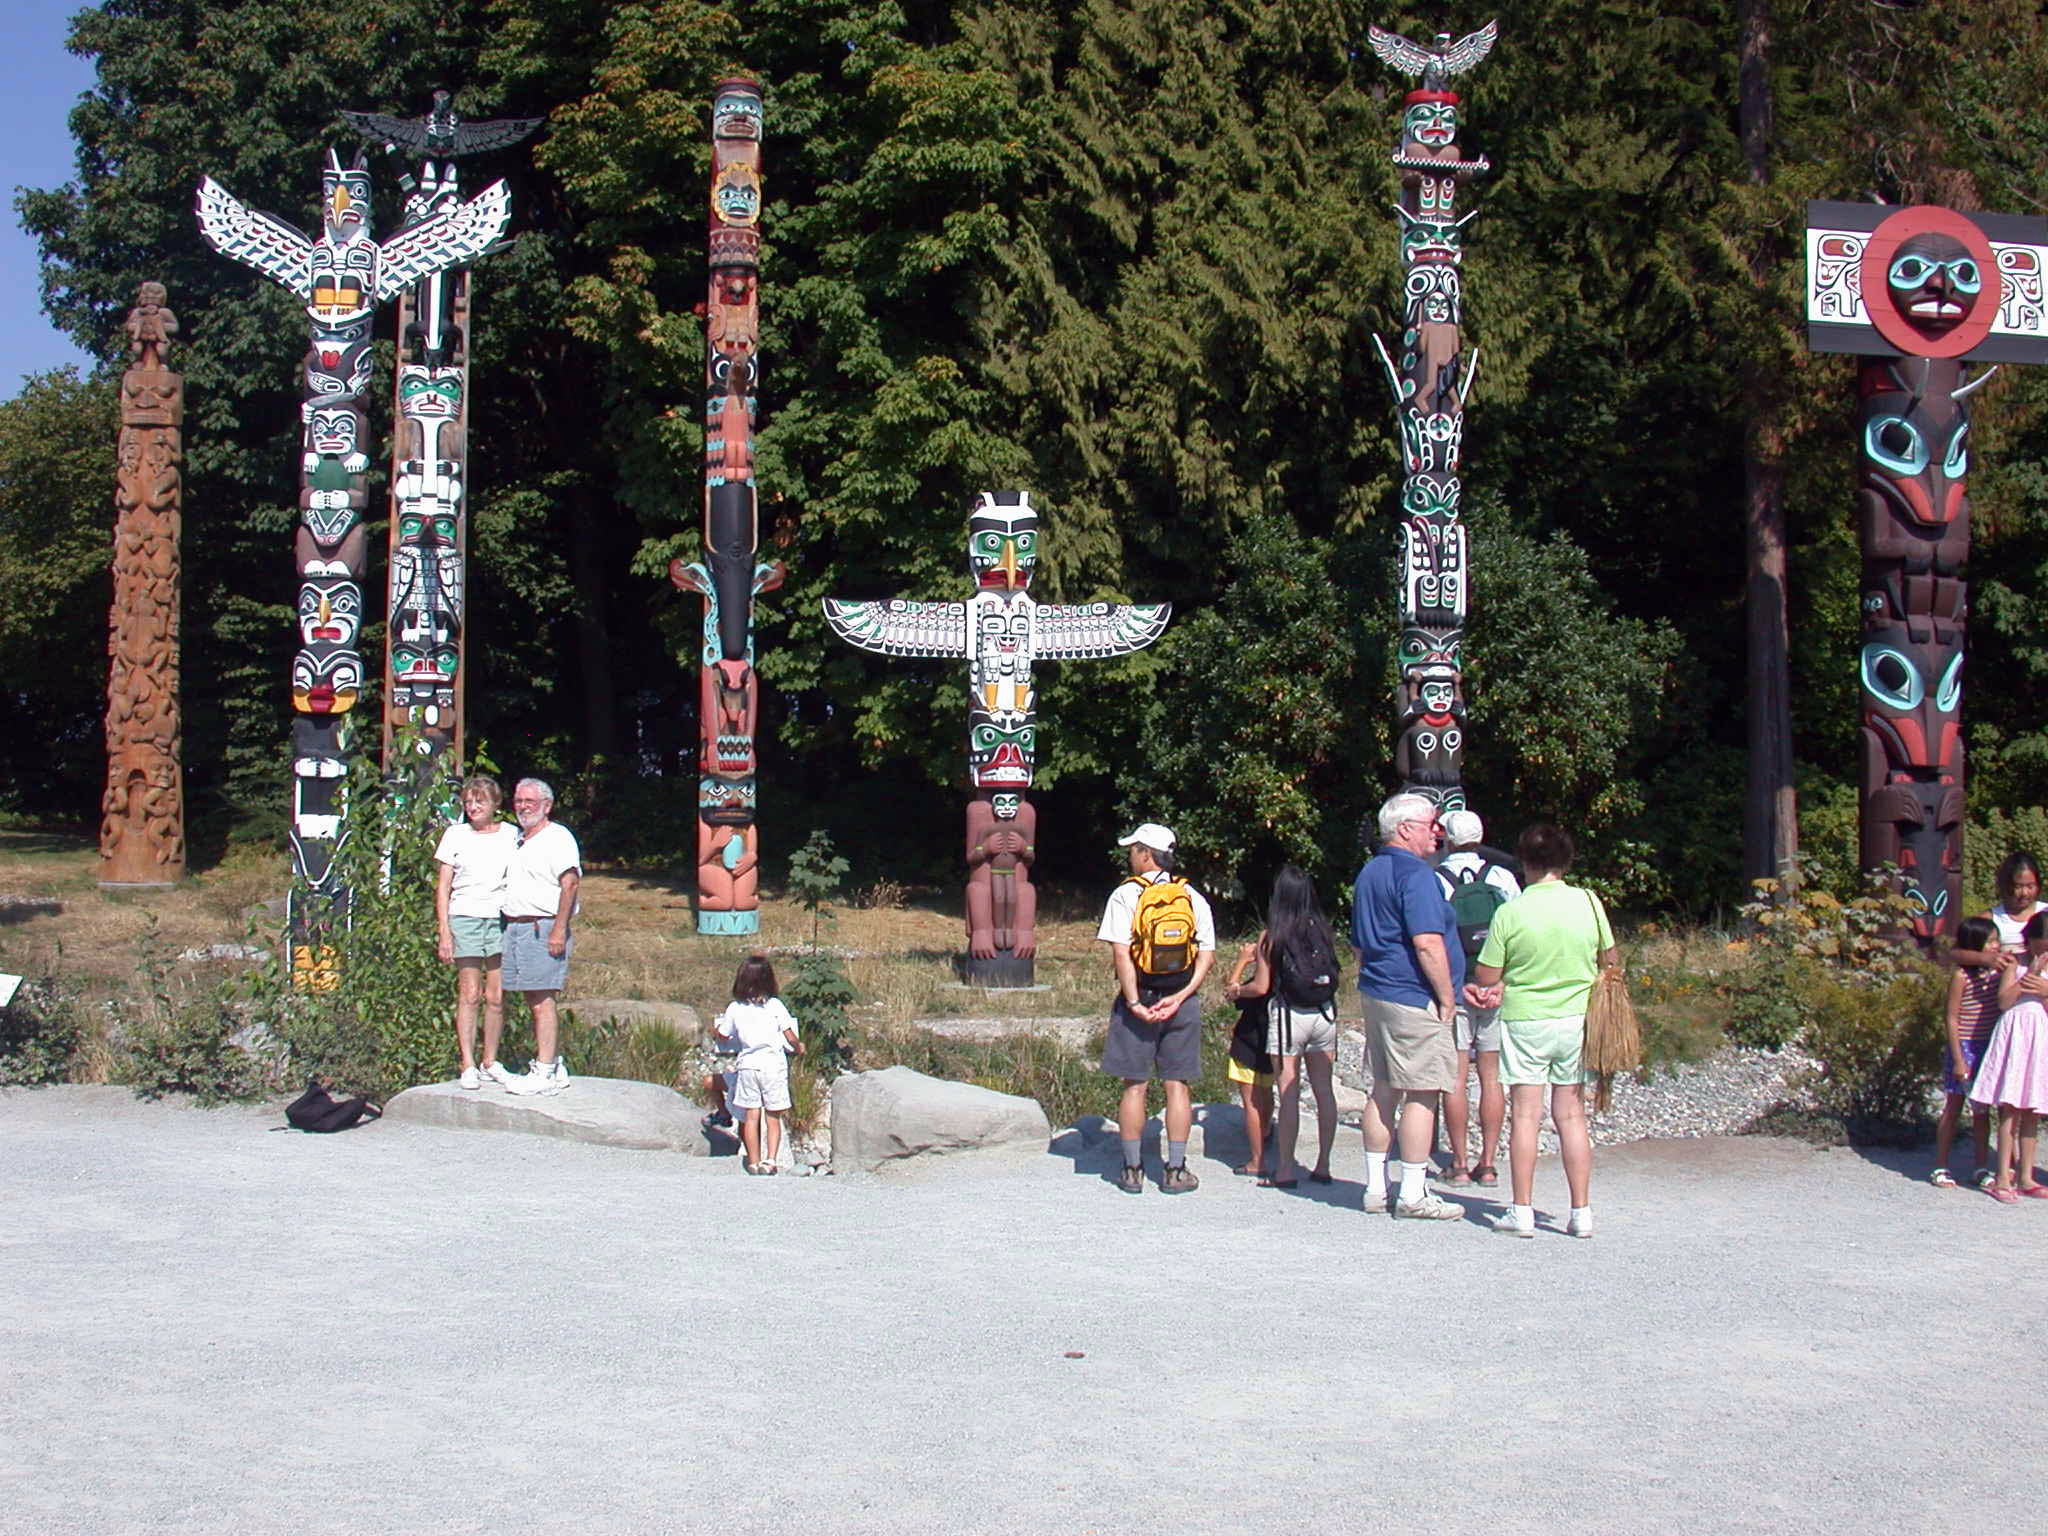 The Totem Pole Material Transformation Of A Cultural Icon